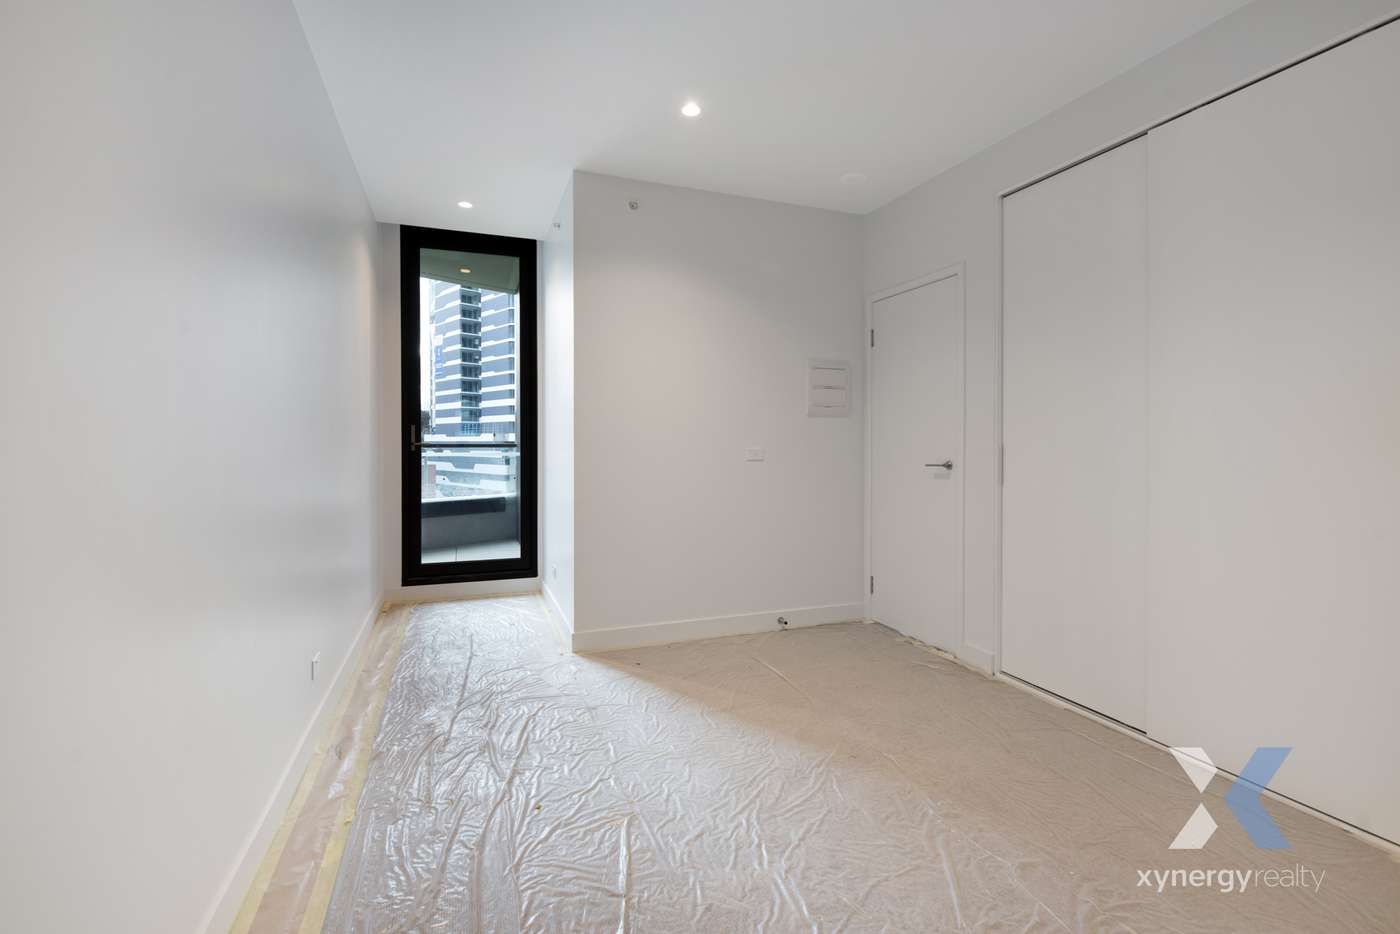 Seventh view of Homely apartment listing, 802/649 Chapel Street, South Yarra VIC 3141